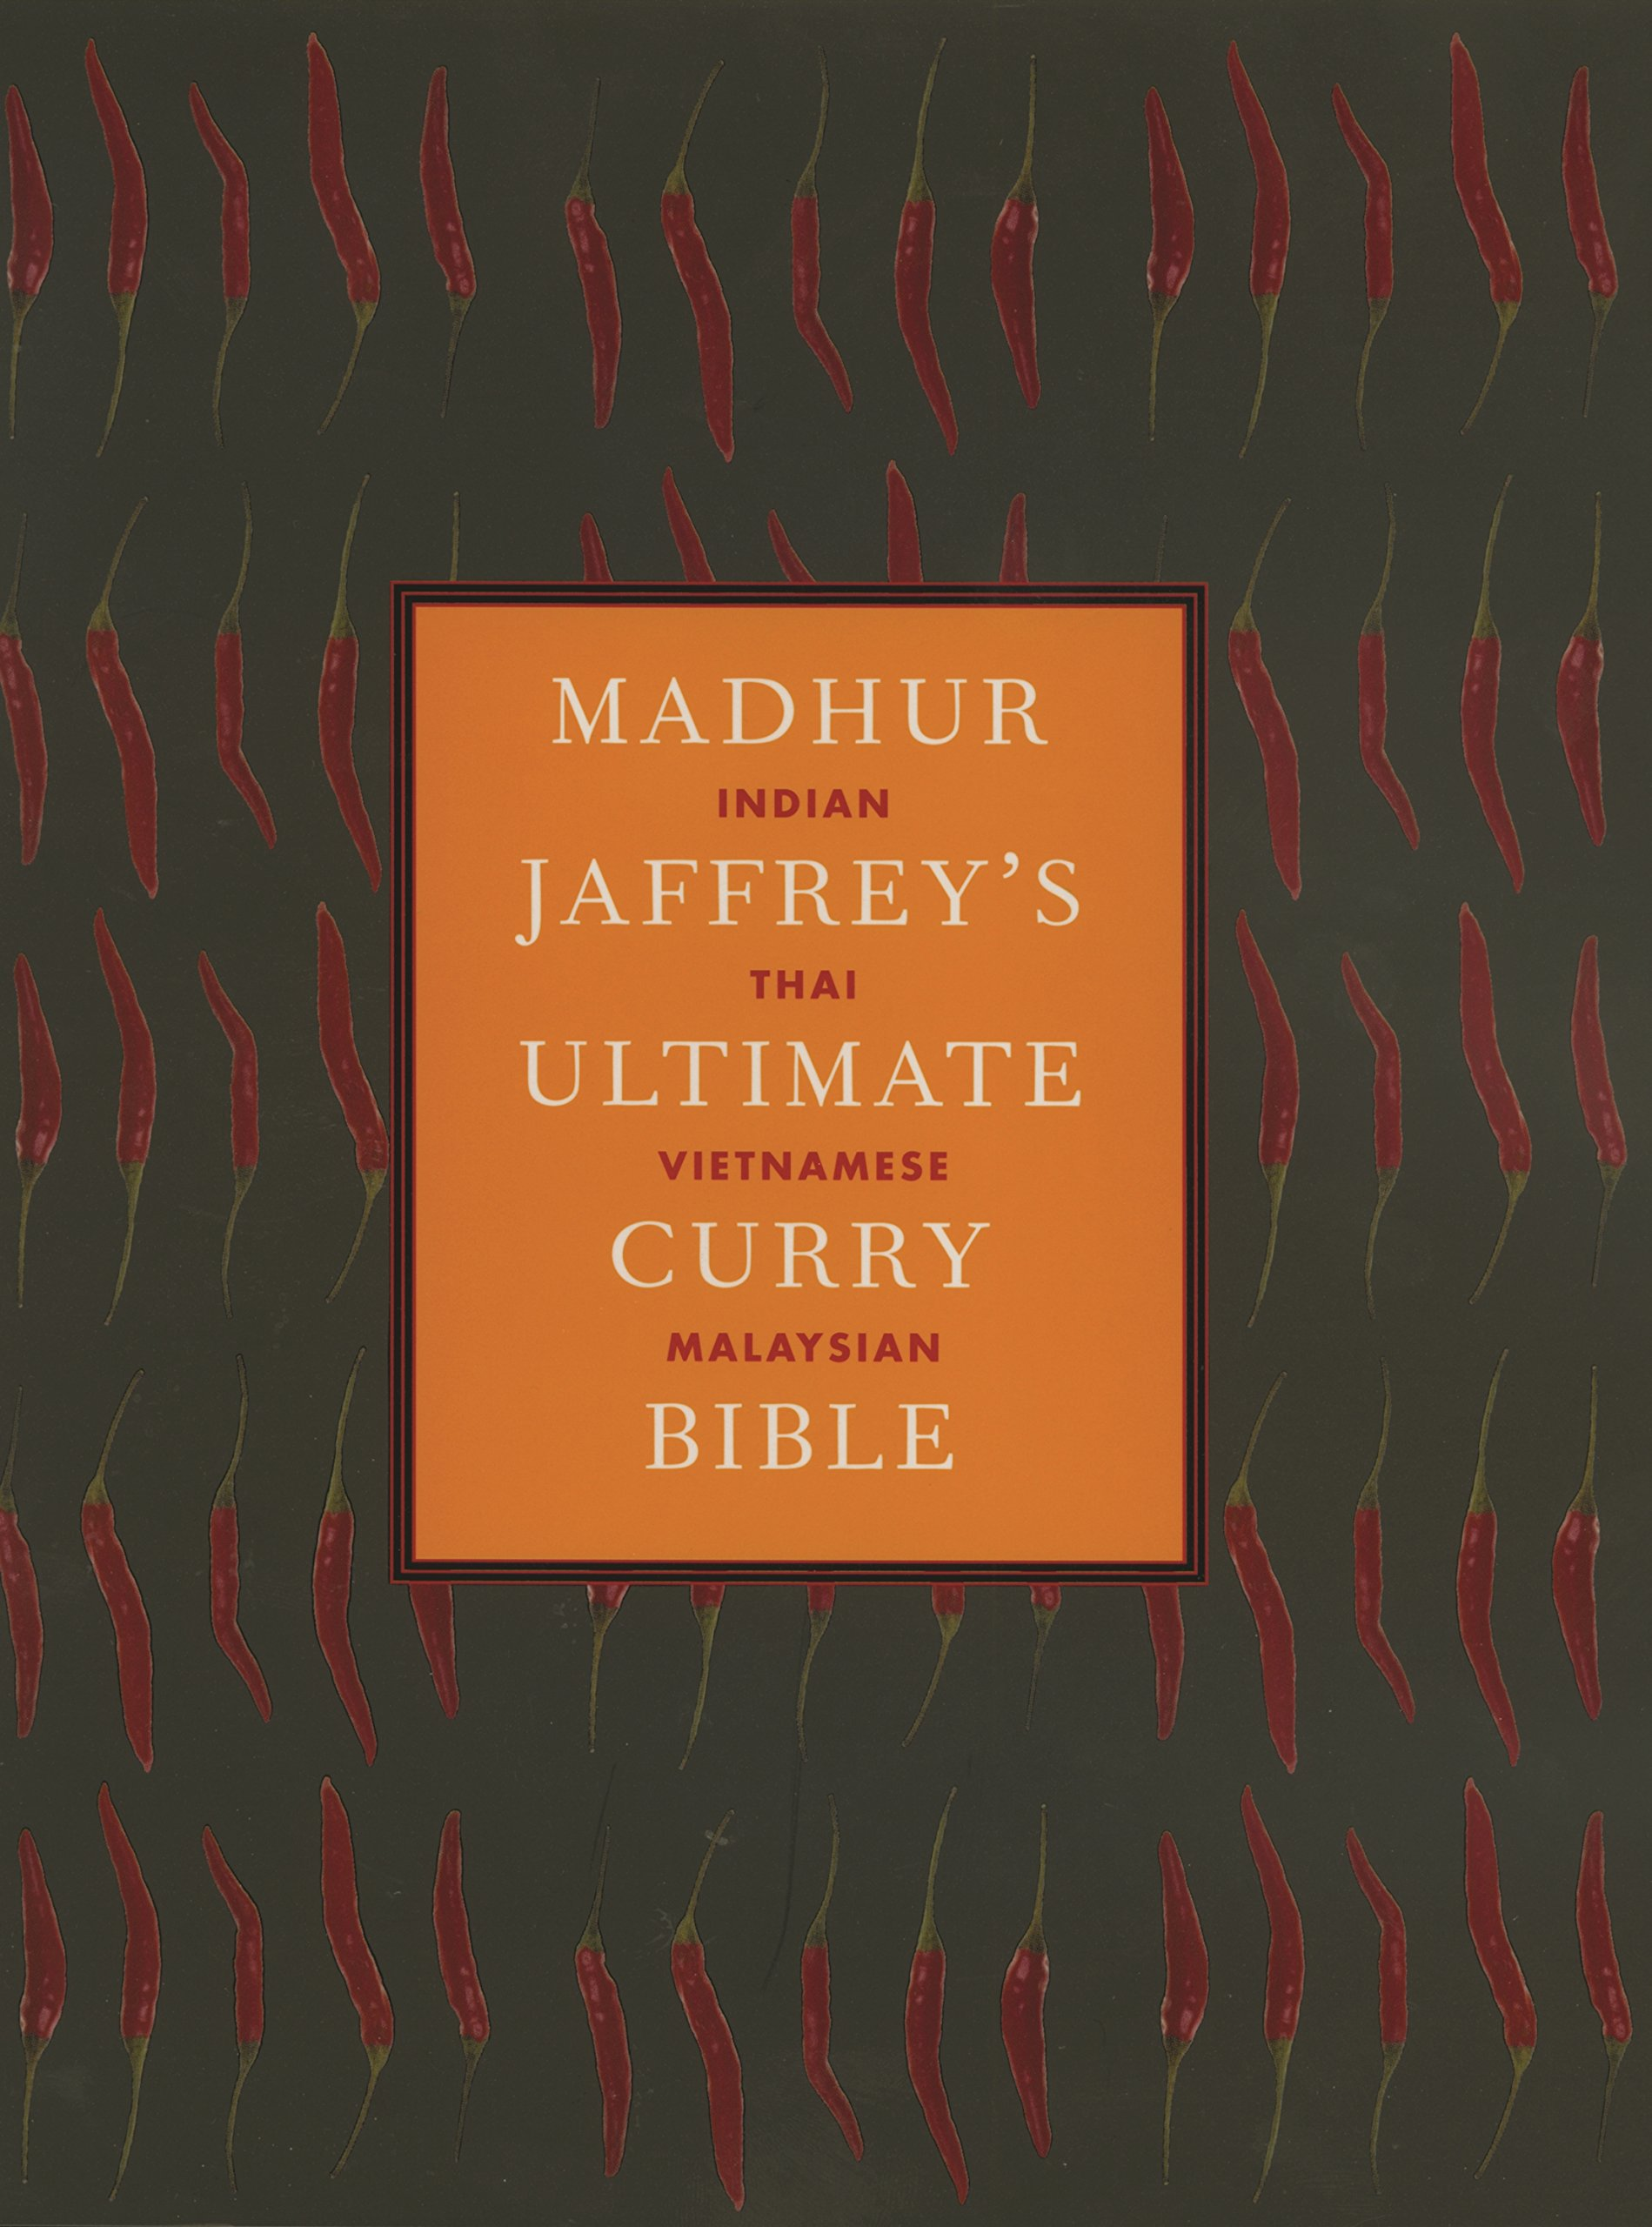 Madhur Jaffrey's Ultimate Curry Bible 2